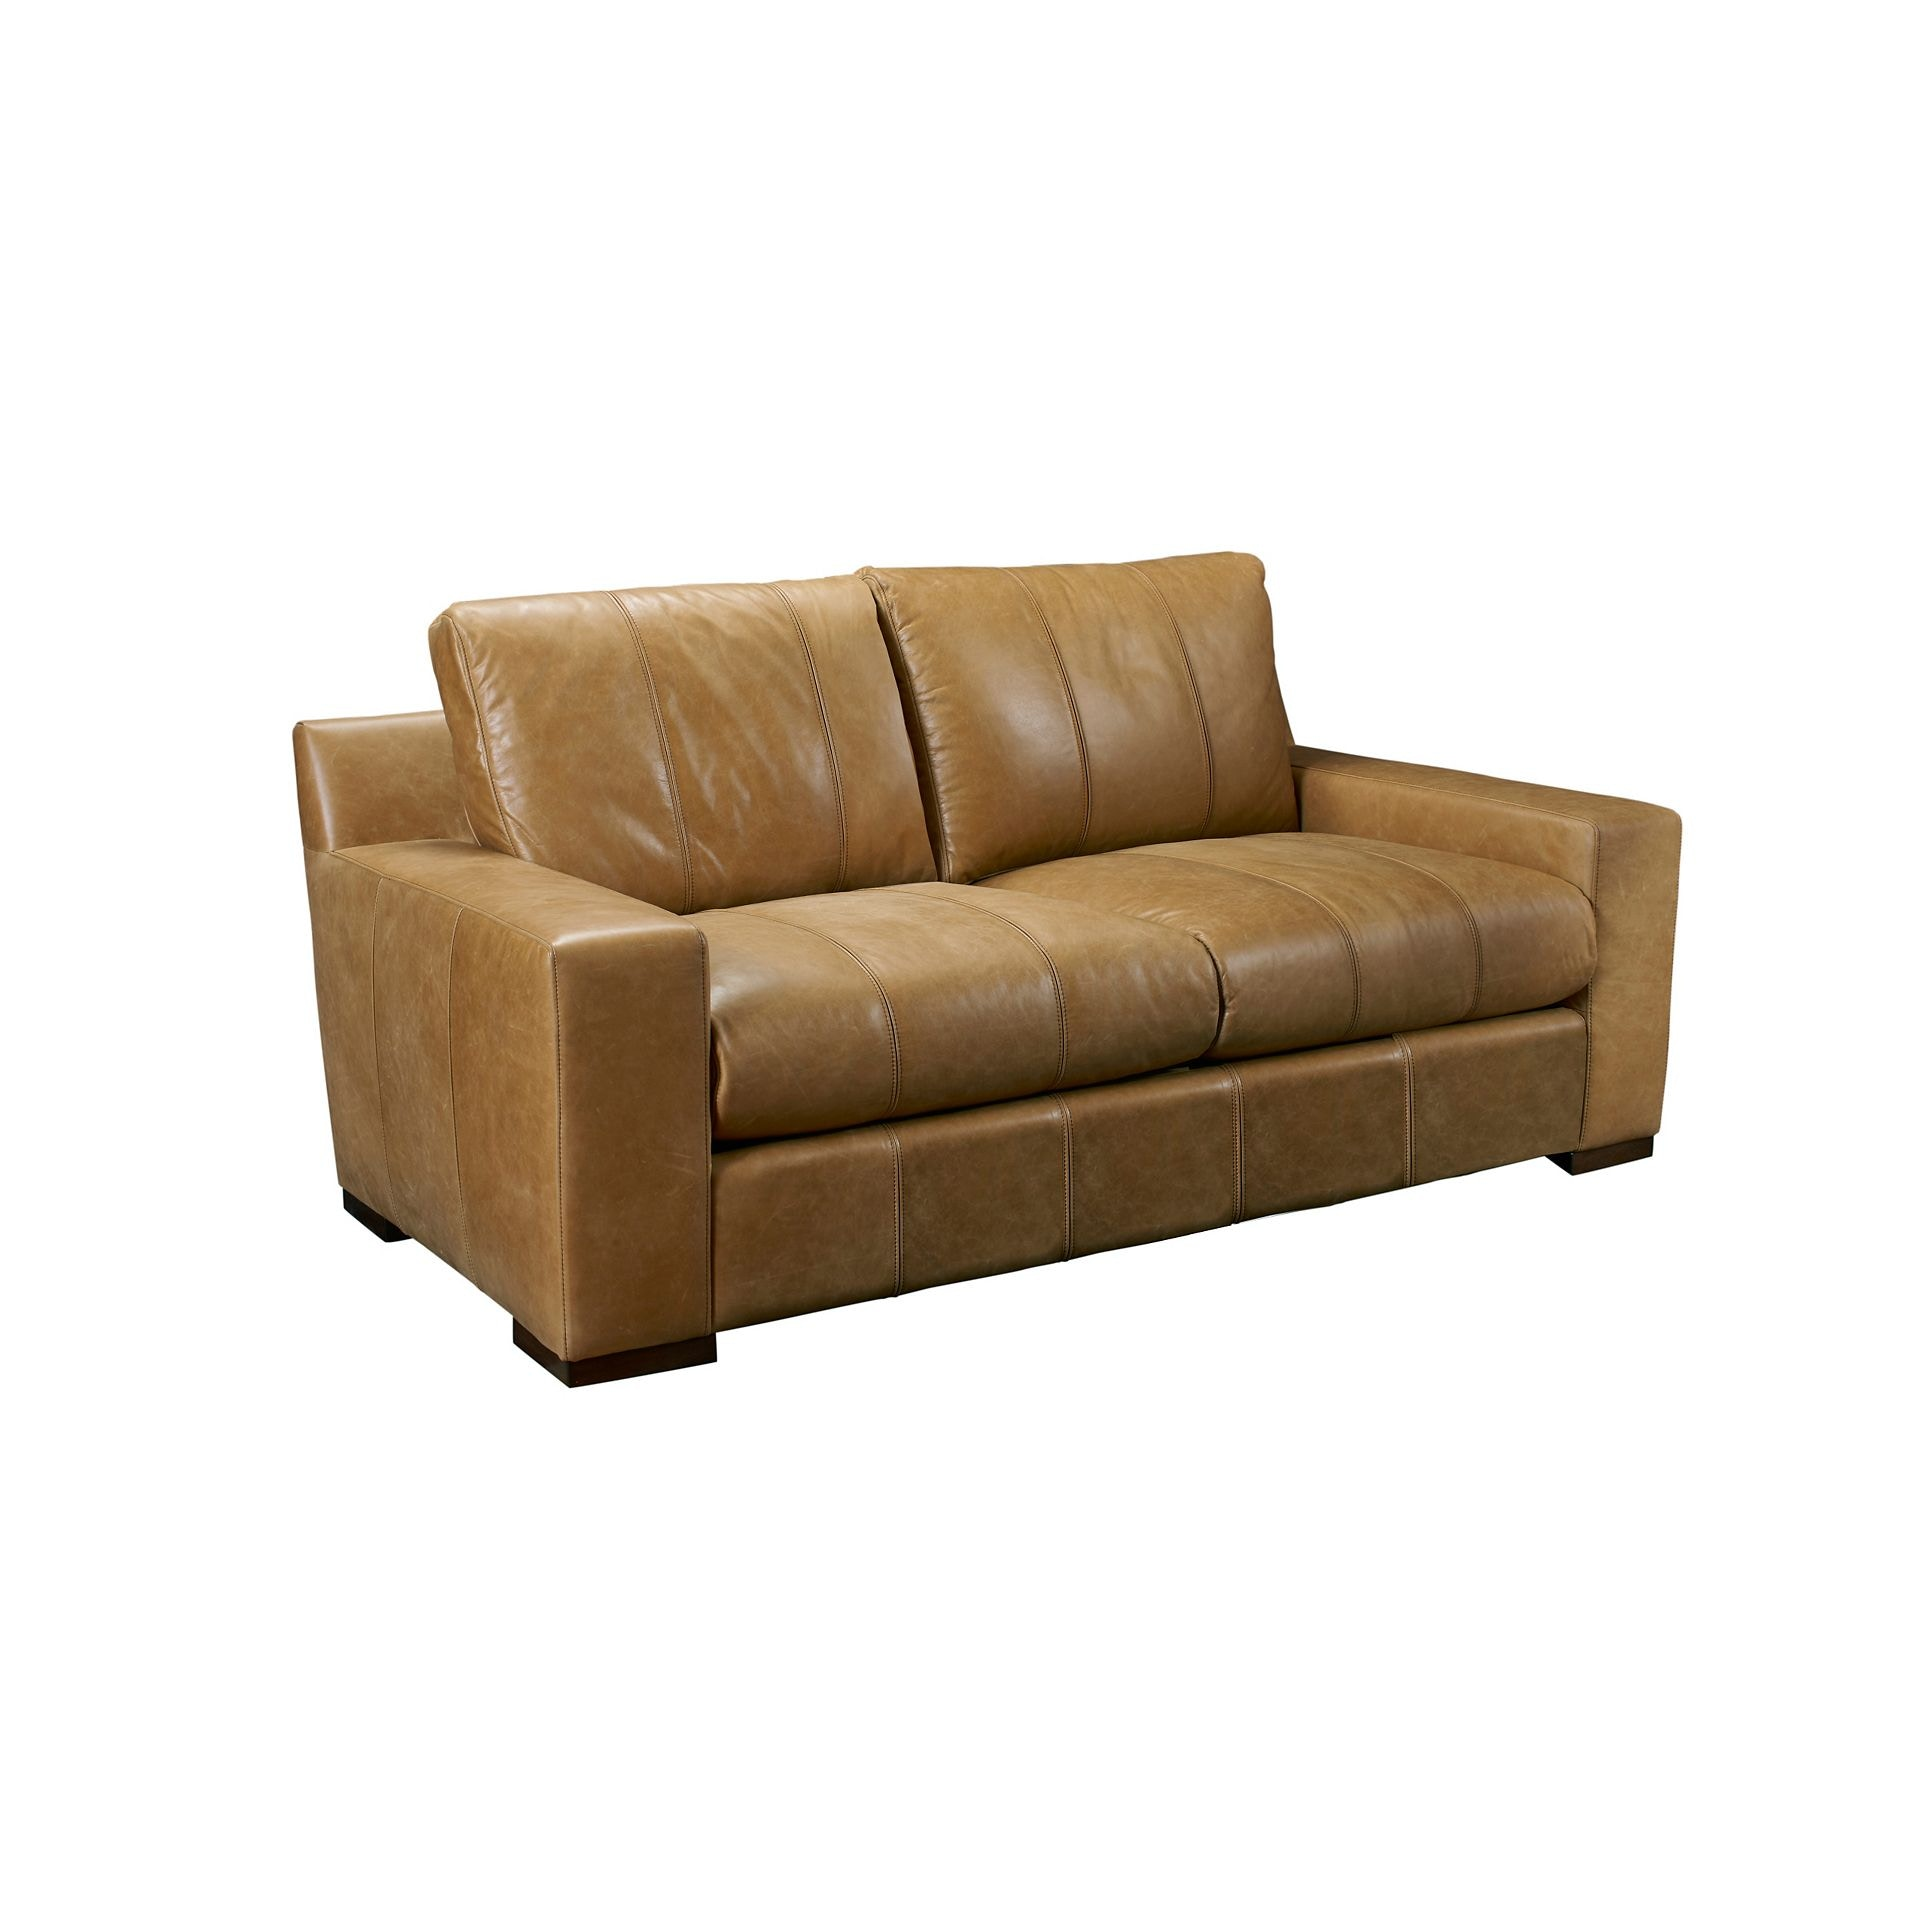 Henredon Furniture Henredon Leather Company Aubin Sofa IL8875 B